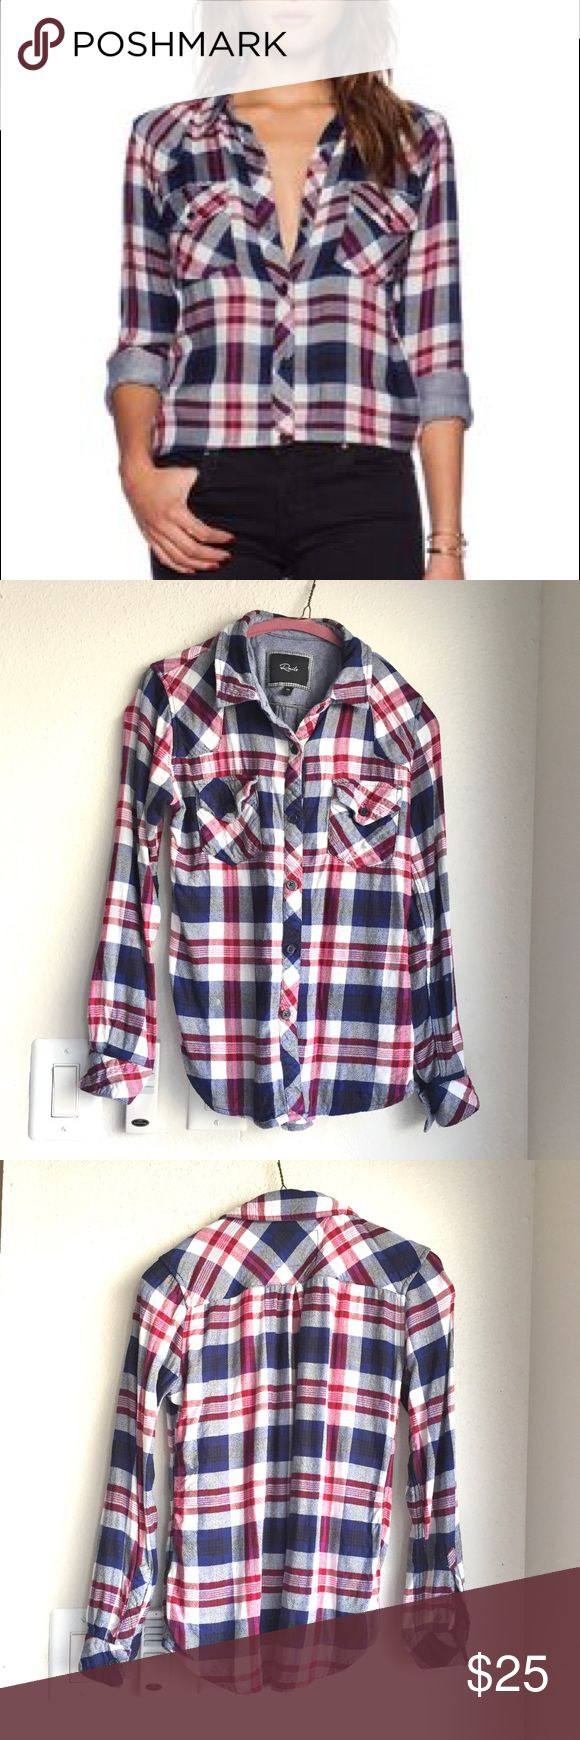 """🆕Rails Kendra Plaid Button Down Authentic Rails Kendra style flannel. Button down front, button pockets at chest. Colors are navy, red and white. Overall good condition, one small spot (photo 4) and a few tiny puckers that aren't noticeable when wearing. Priced to reflect condition and is firm. Size XS, approx 16.5"""" across bust, 24"""" long. ❌No trades❌Price firm unless bundled. Rails Tops Button Down Shirts"""